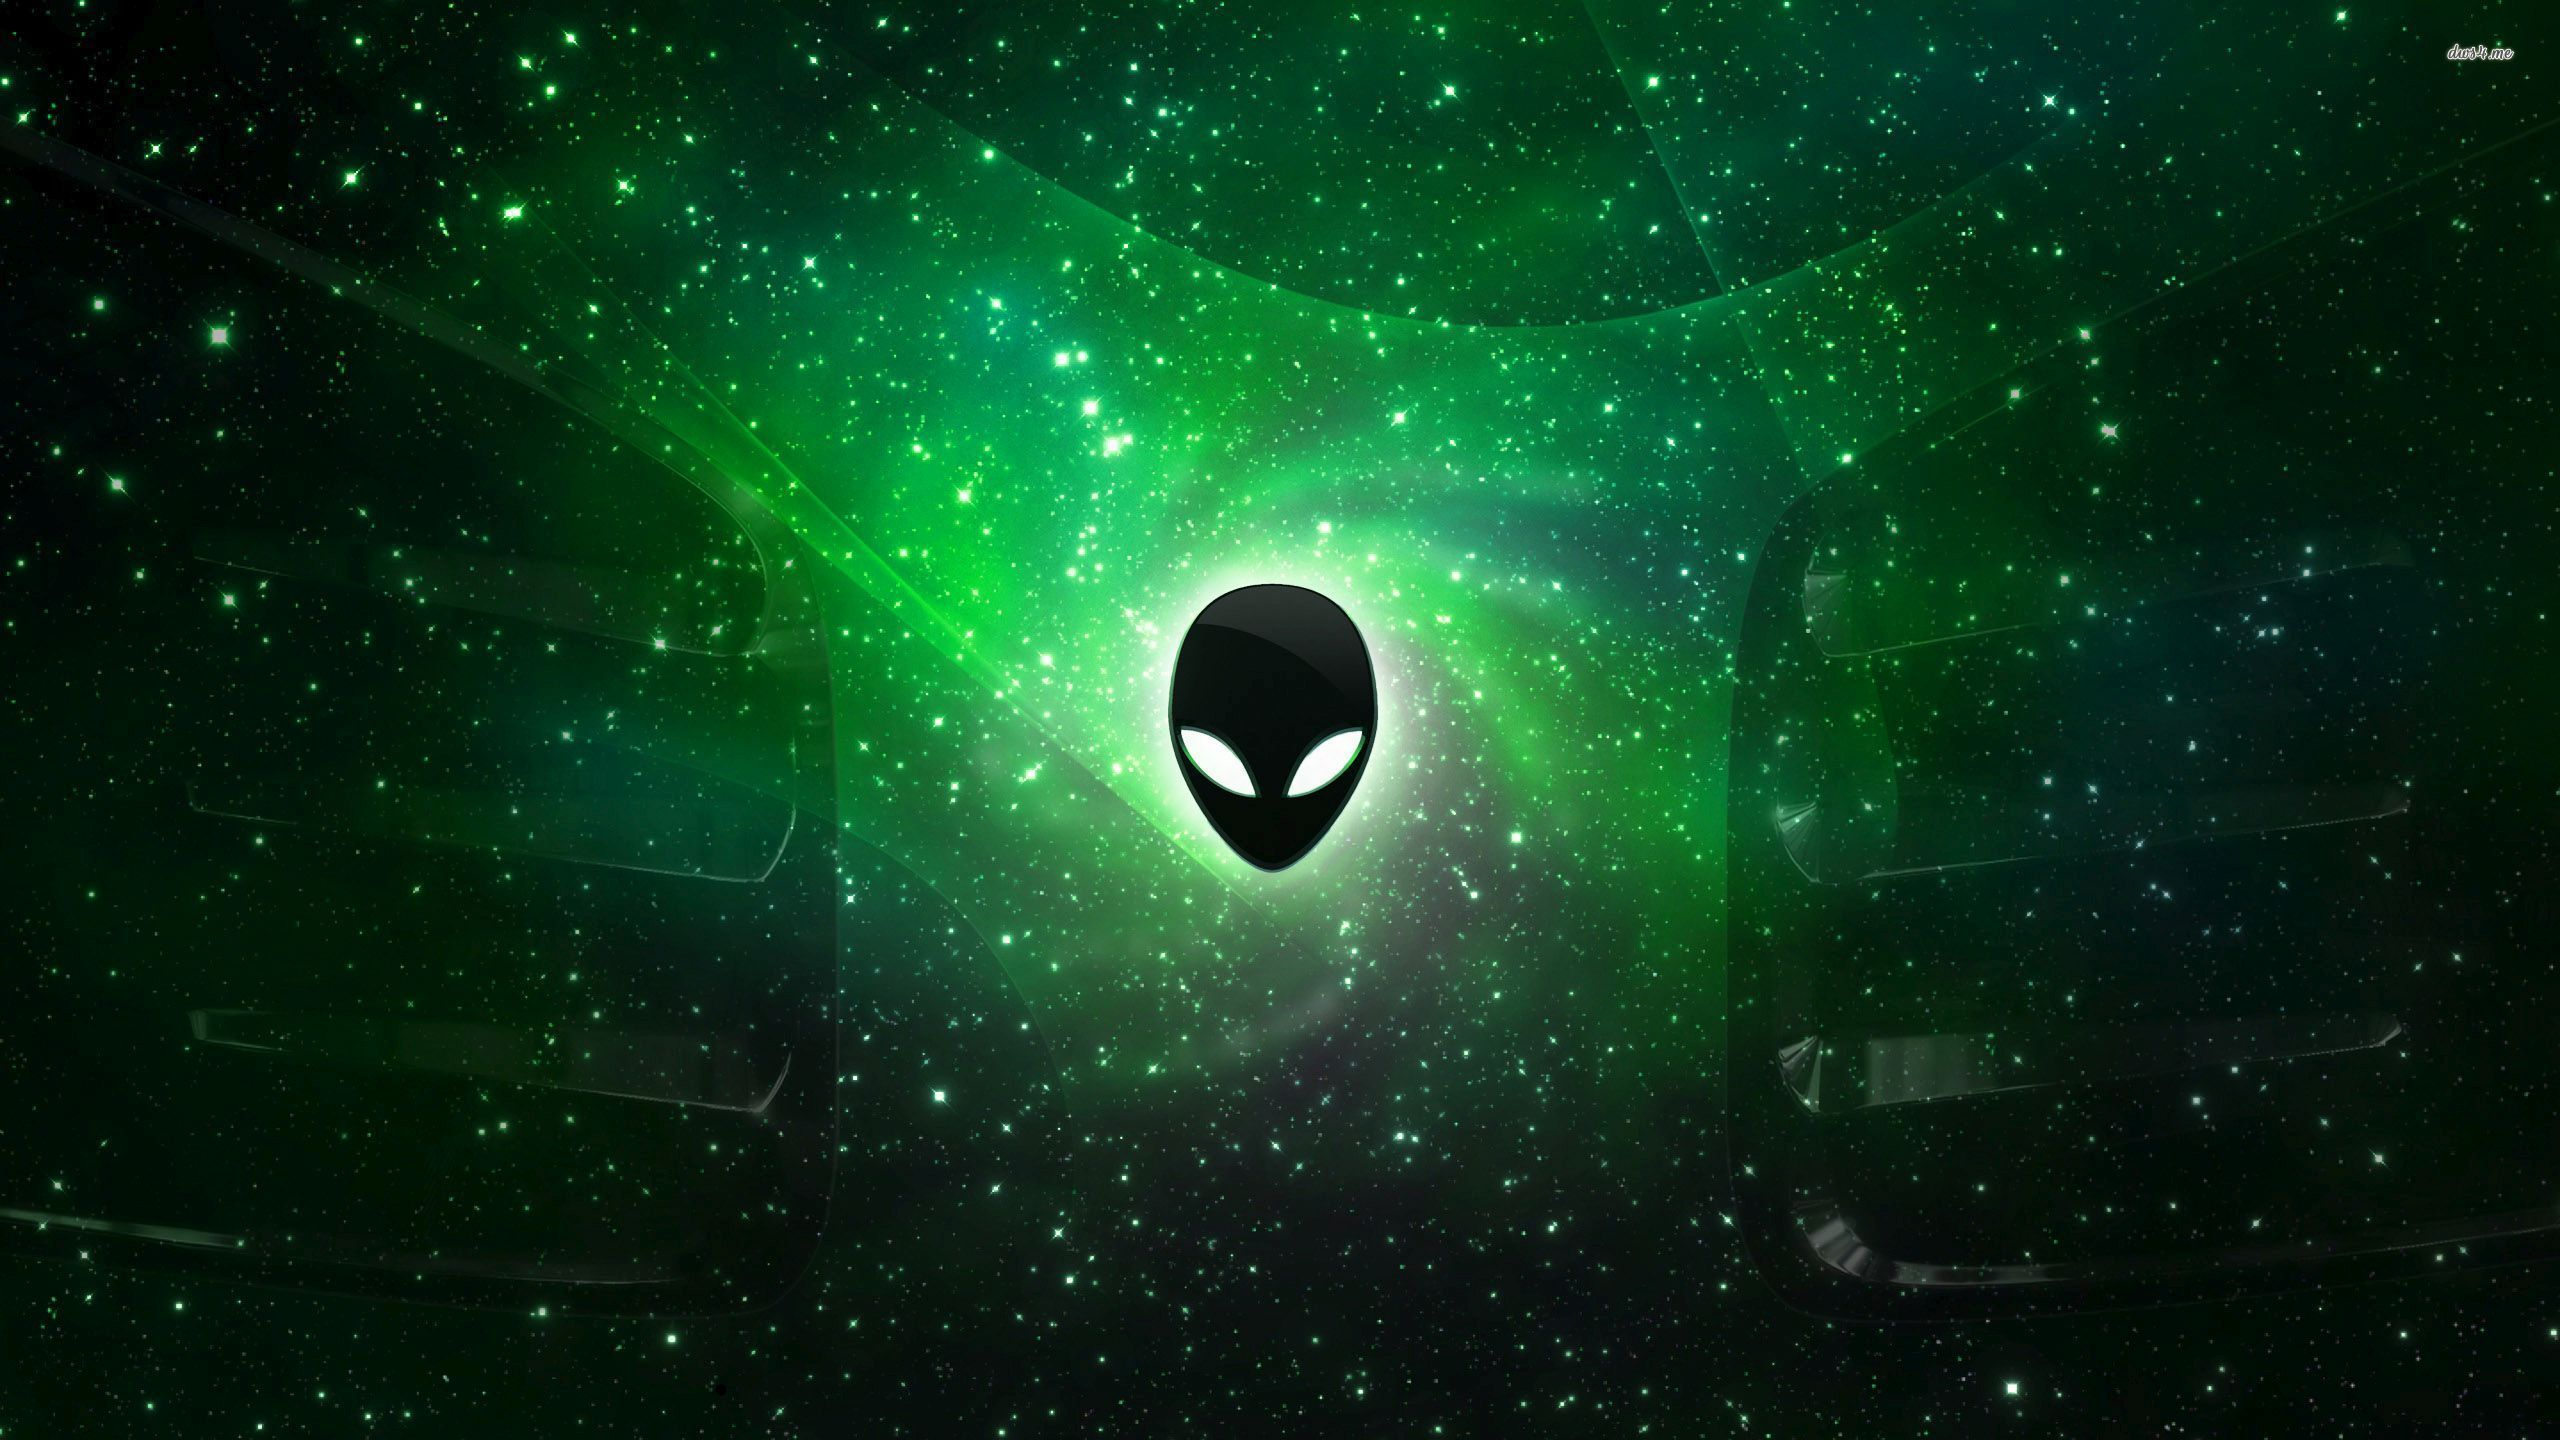 How To Make Alienware X51 Run Faster Wallpaper Pc Alienware Hd Wallpapers For Pc